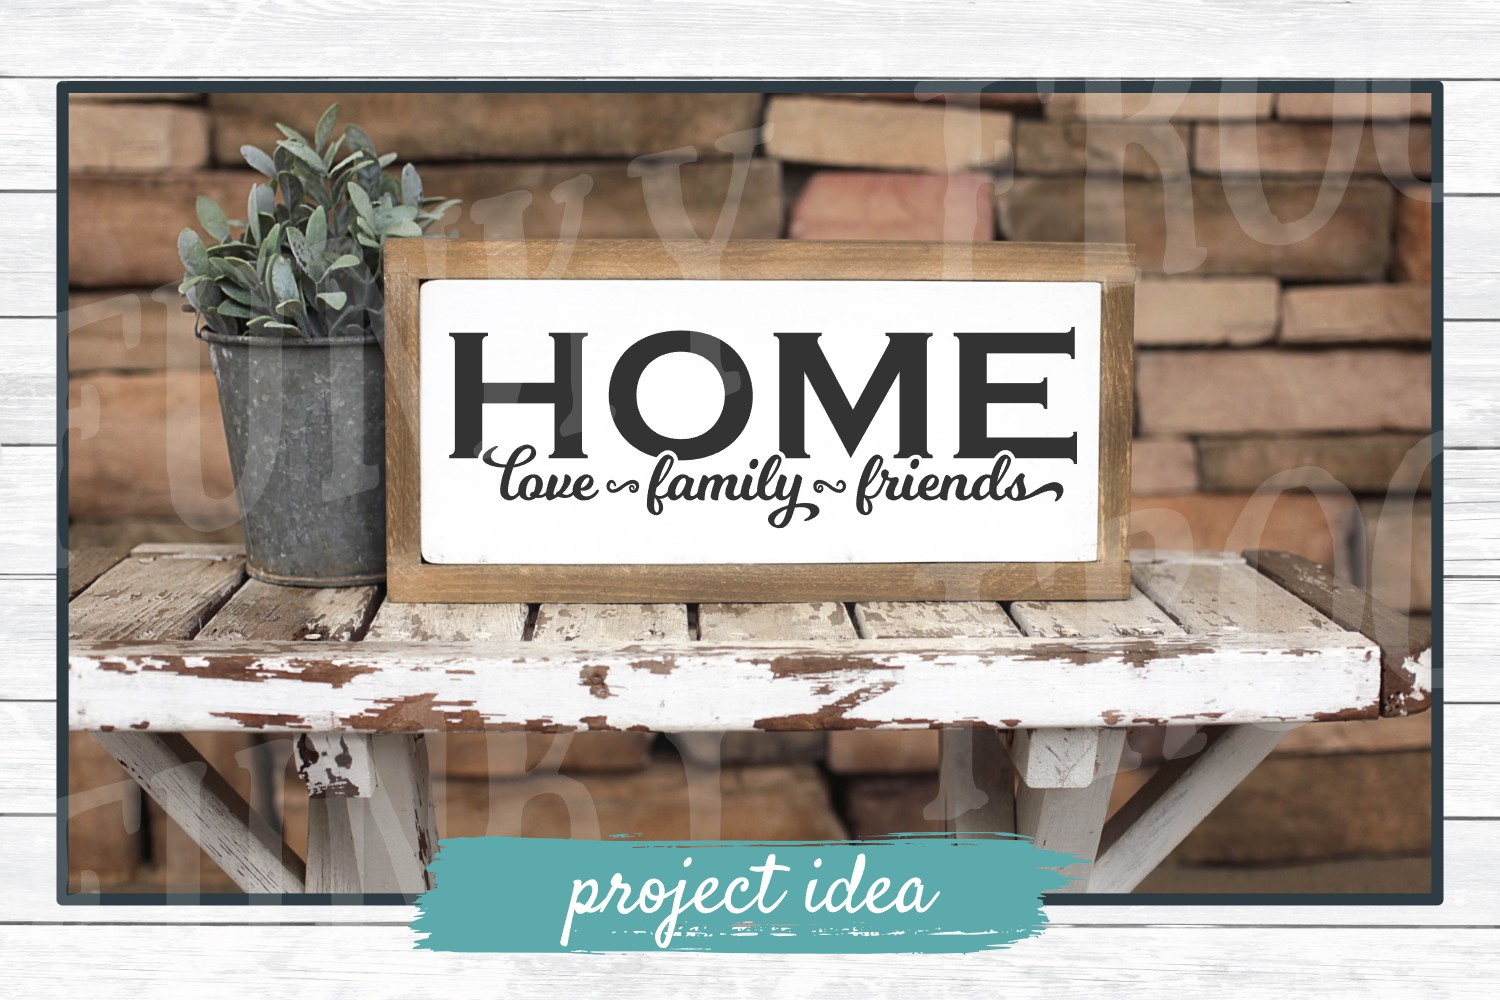 Home Love, Family, Friends - SVG Cut File for Crafters example image 2